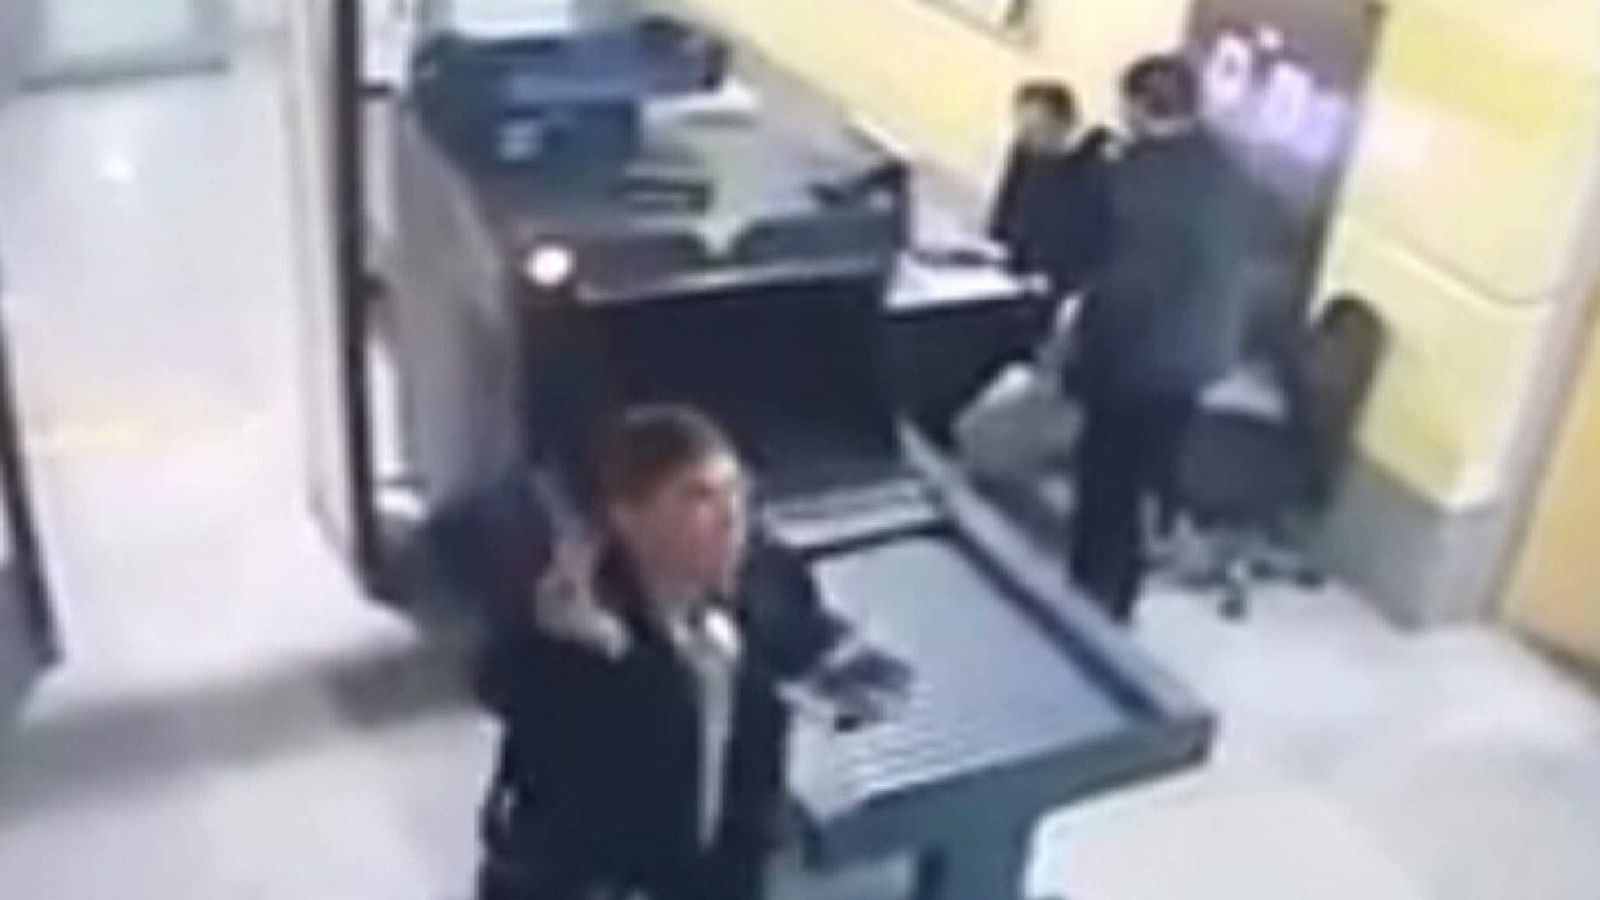 Hijacker Goes Through Airport Security